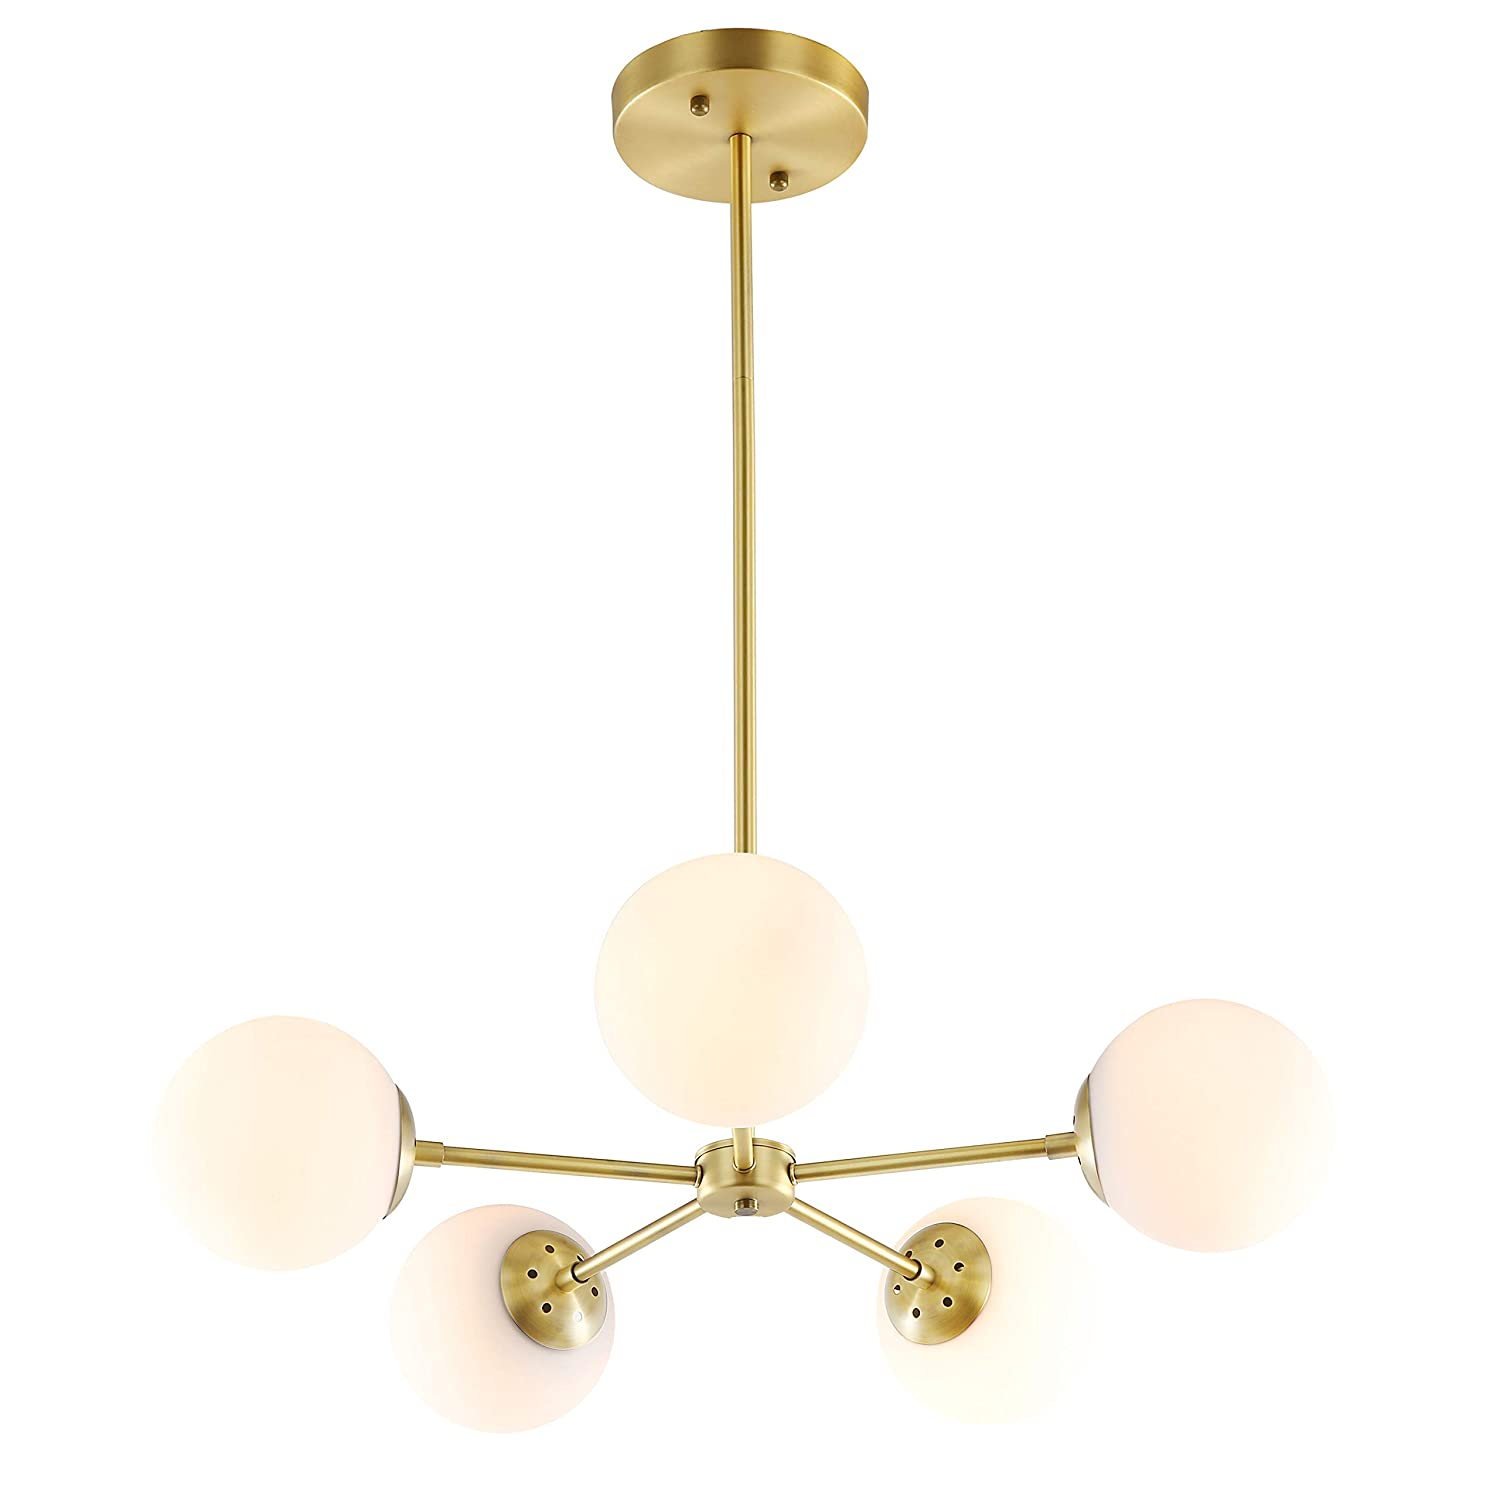 Light Society Grammercy 5-Light Chandelier Pendant, Brushed Brass with White Frosted Globes, Classic Mid Century Modern Lighting Fixture (LS-C228-BRS-WHI)